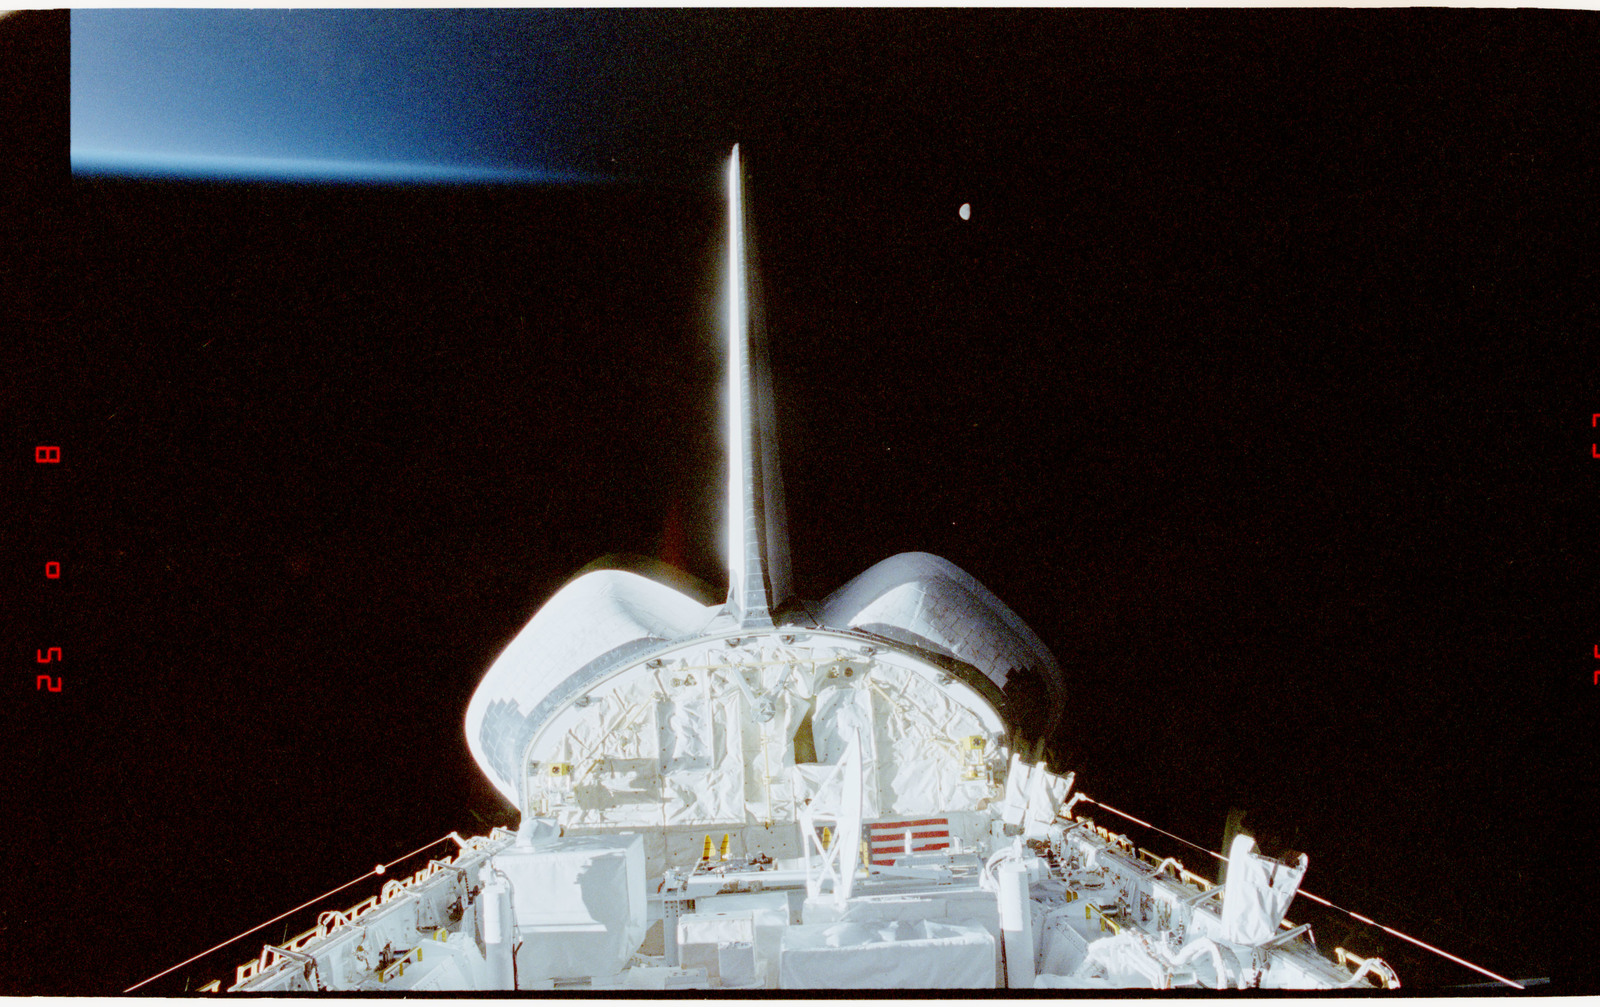 STS056-28-021 - STS-056 - Views of the payload bay, Earth limb with day/night terminator, and moon.